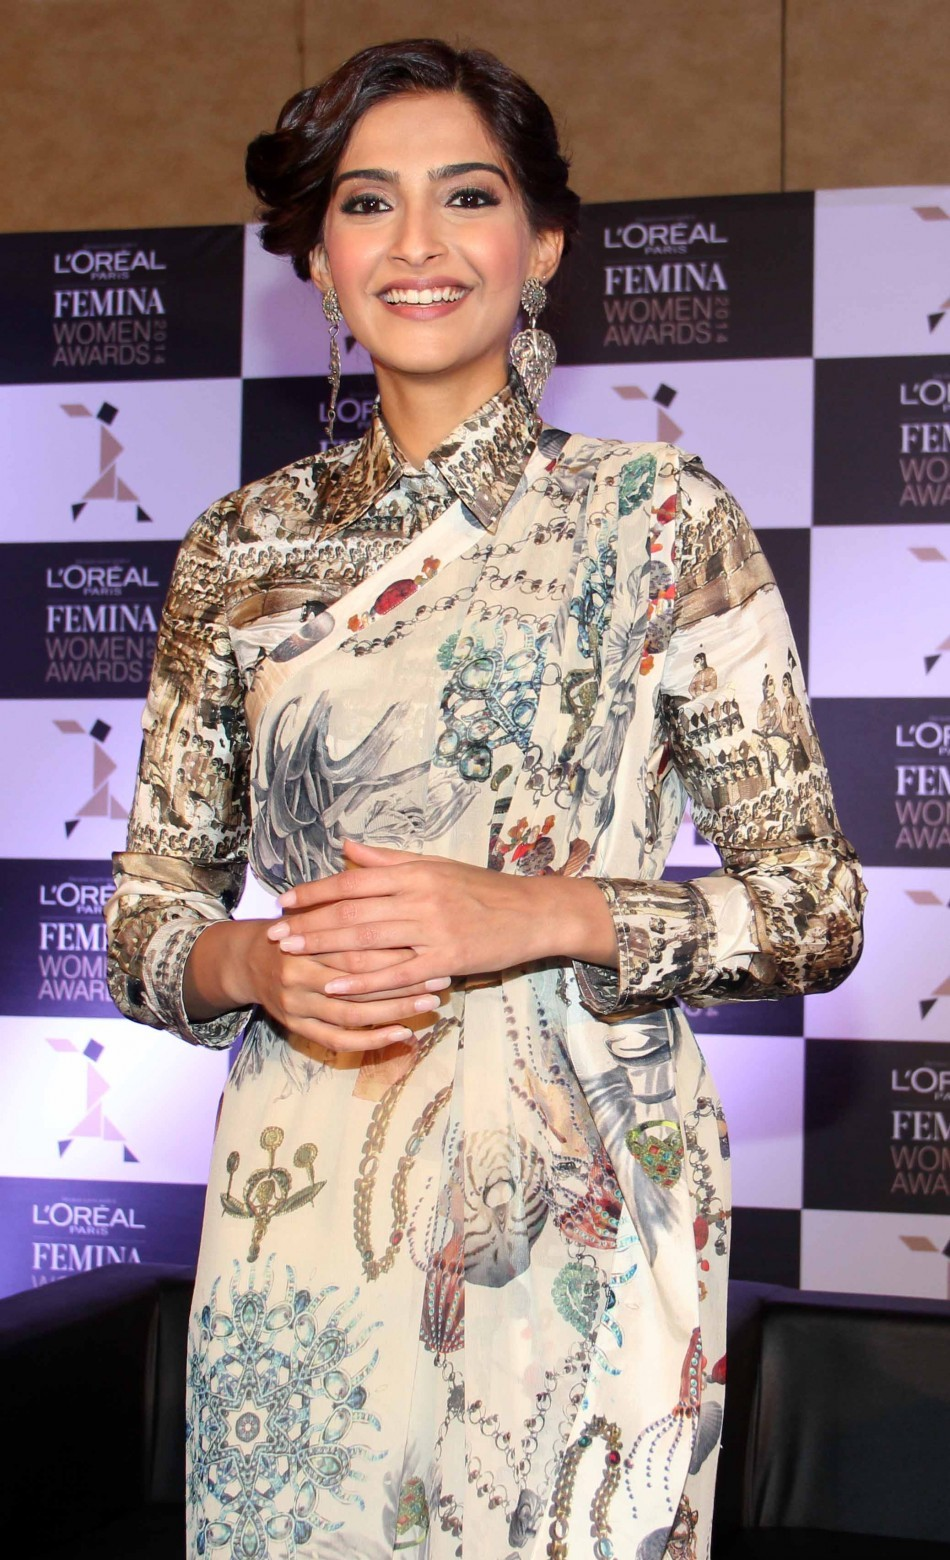 Sonam Kapoor at the 3rd edition of L'Oreal  Paris Femina Women Awards nominee announcementSonam Kapoor at the 3rd edition of L'Oreal  Paris Femina Women Awards nominee announcement